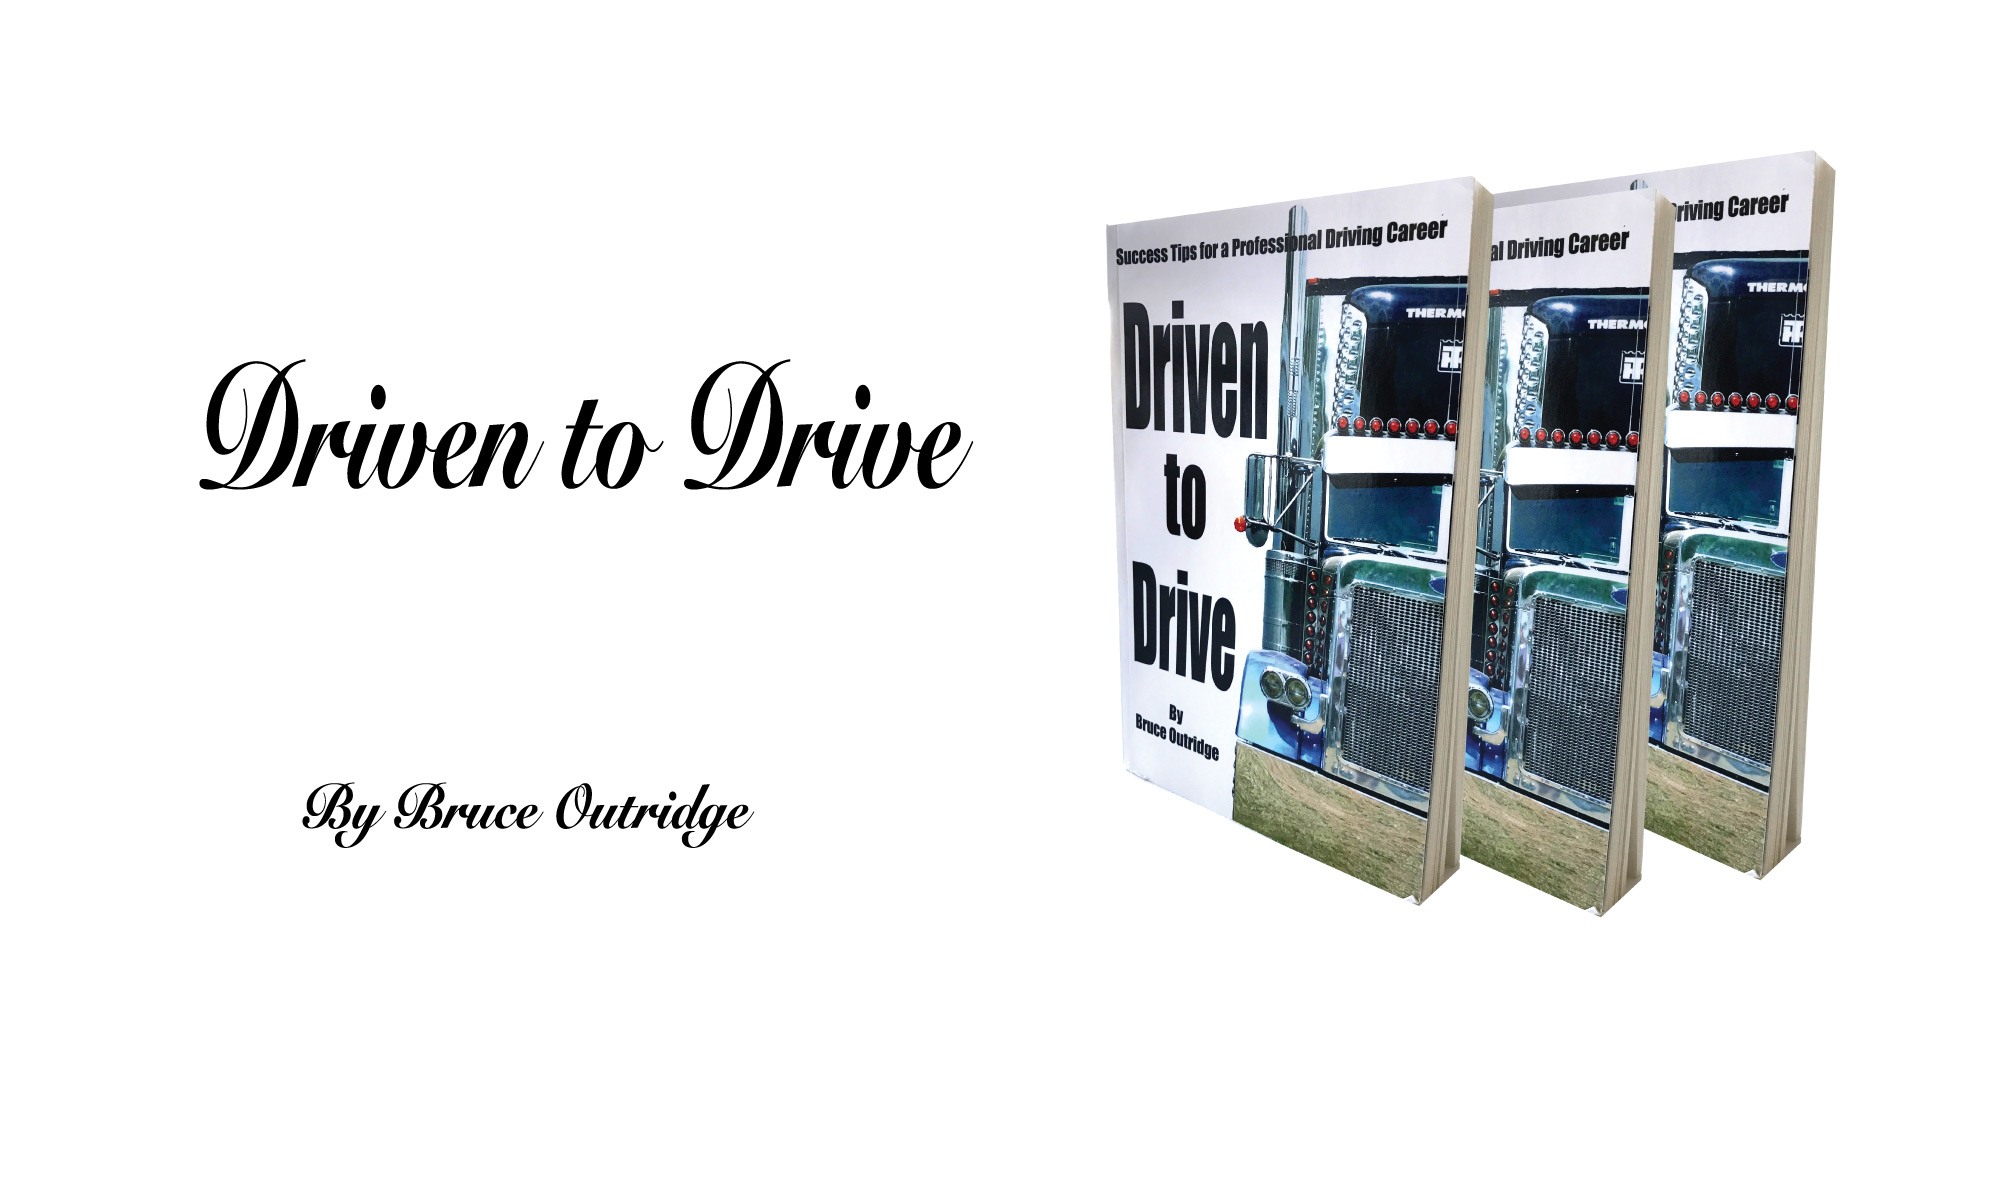 Driven to Drive Book by Bruce Outridge